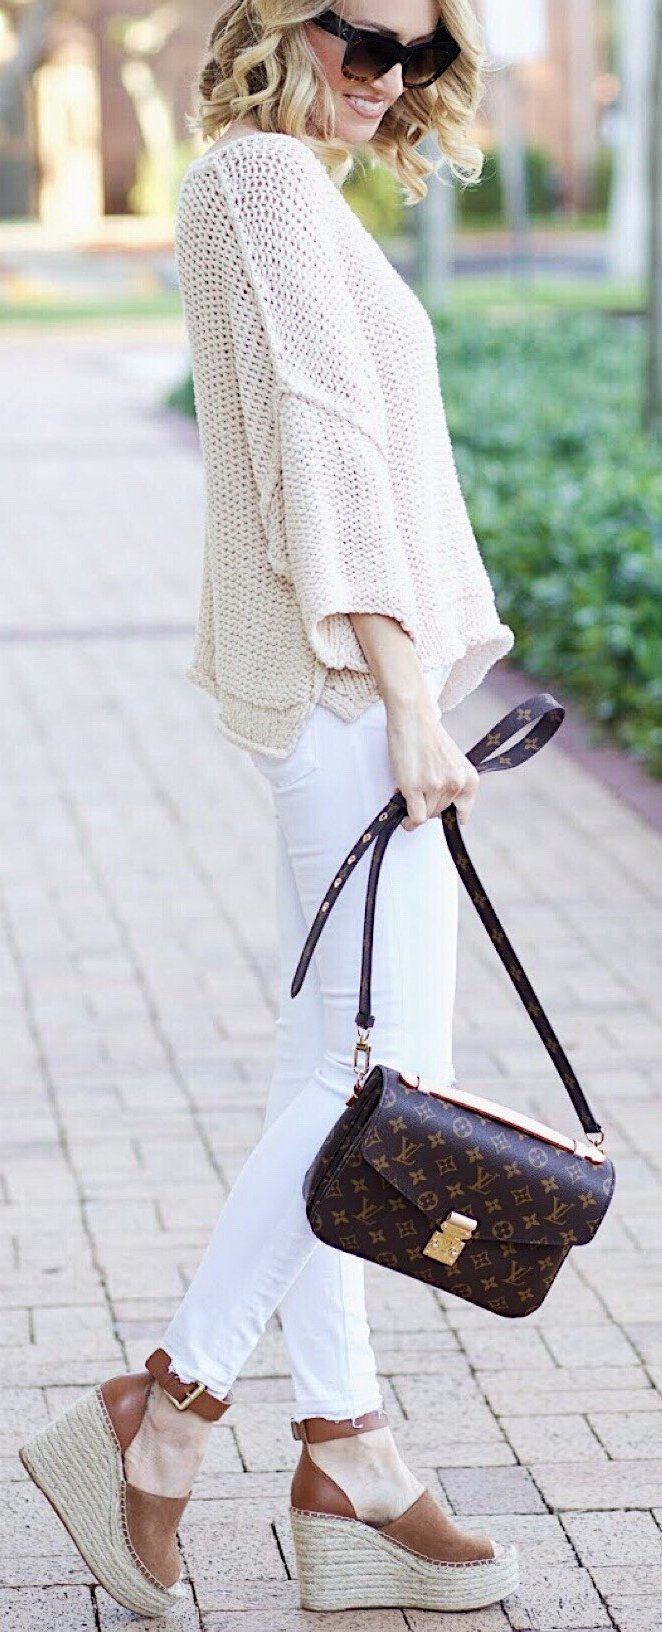 These outfits are perfect #springtime #outfit inspiration.